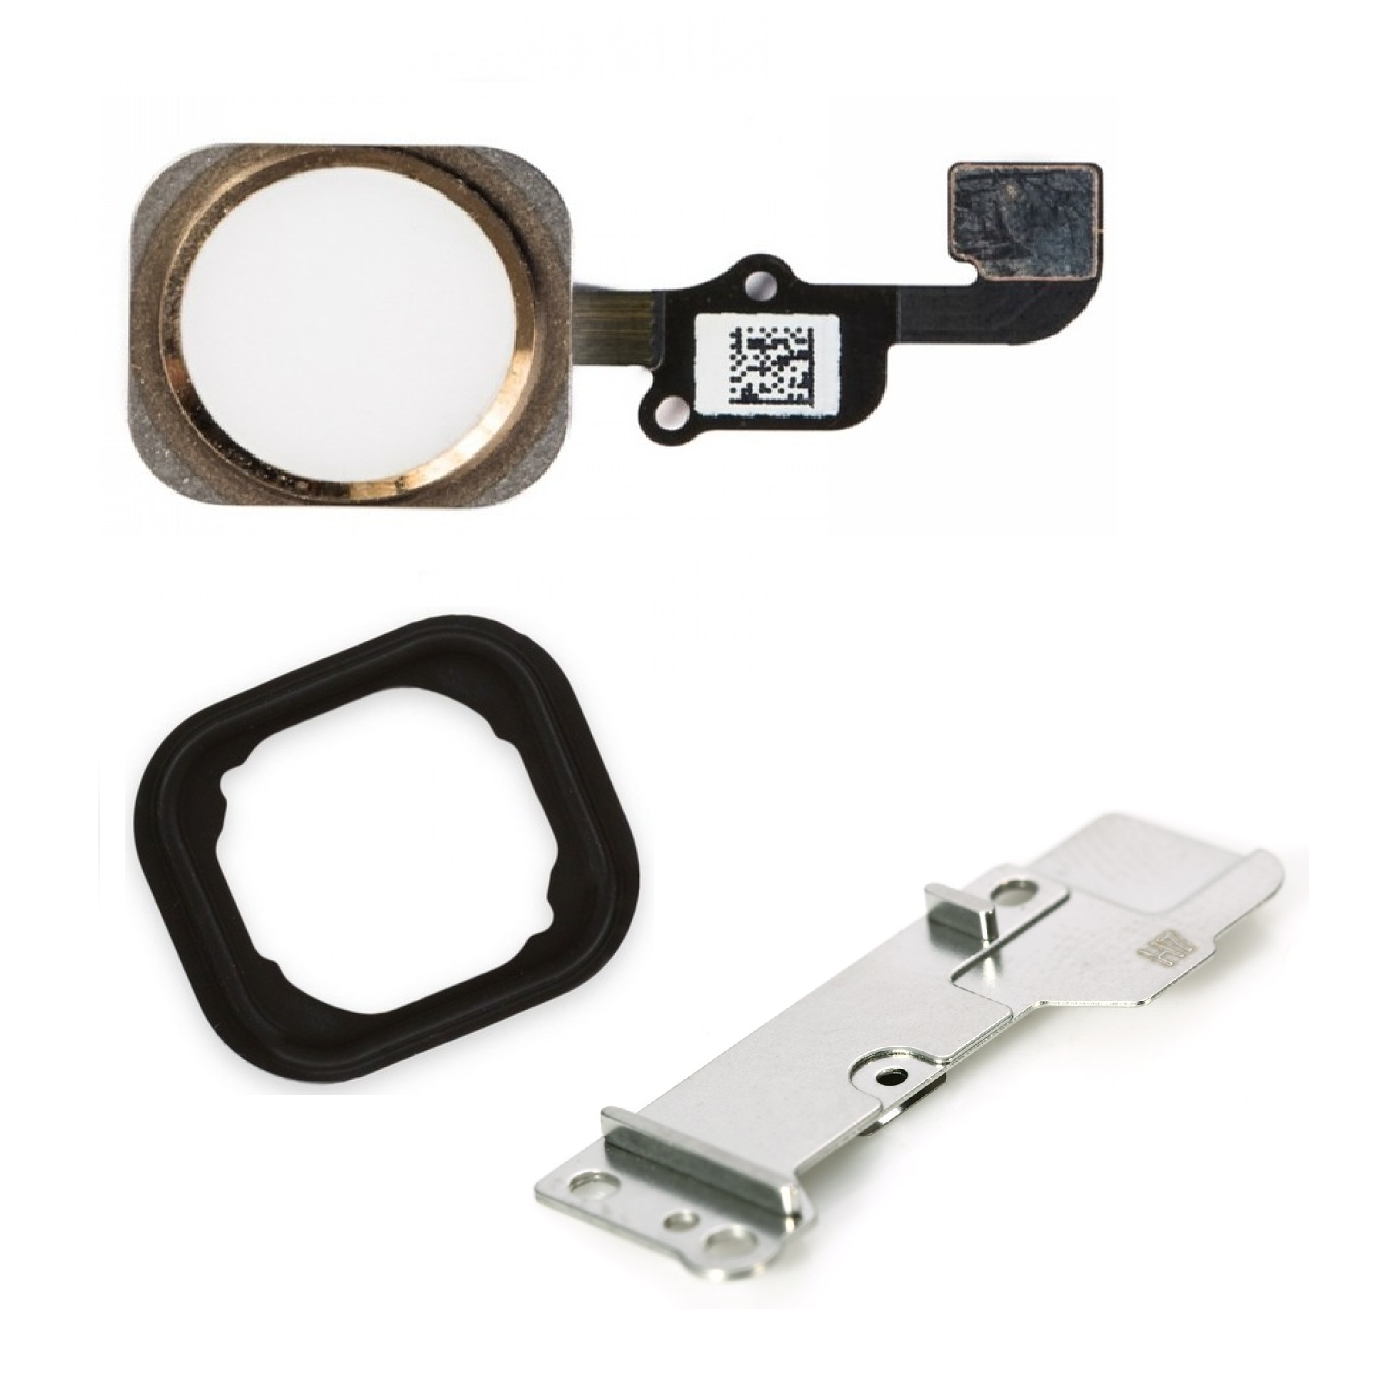 huge selection of b73fc 42878 Apple iPhone 6s Home Button Flex Cable+Holder Rubber+Metal Bracket - Gold